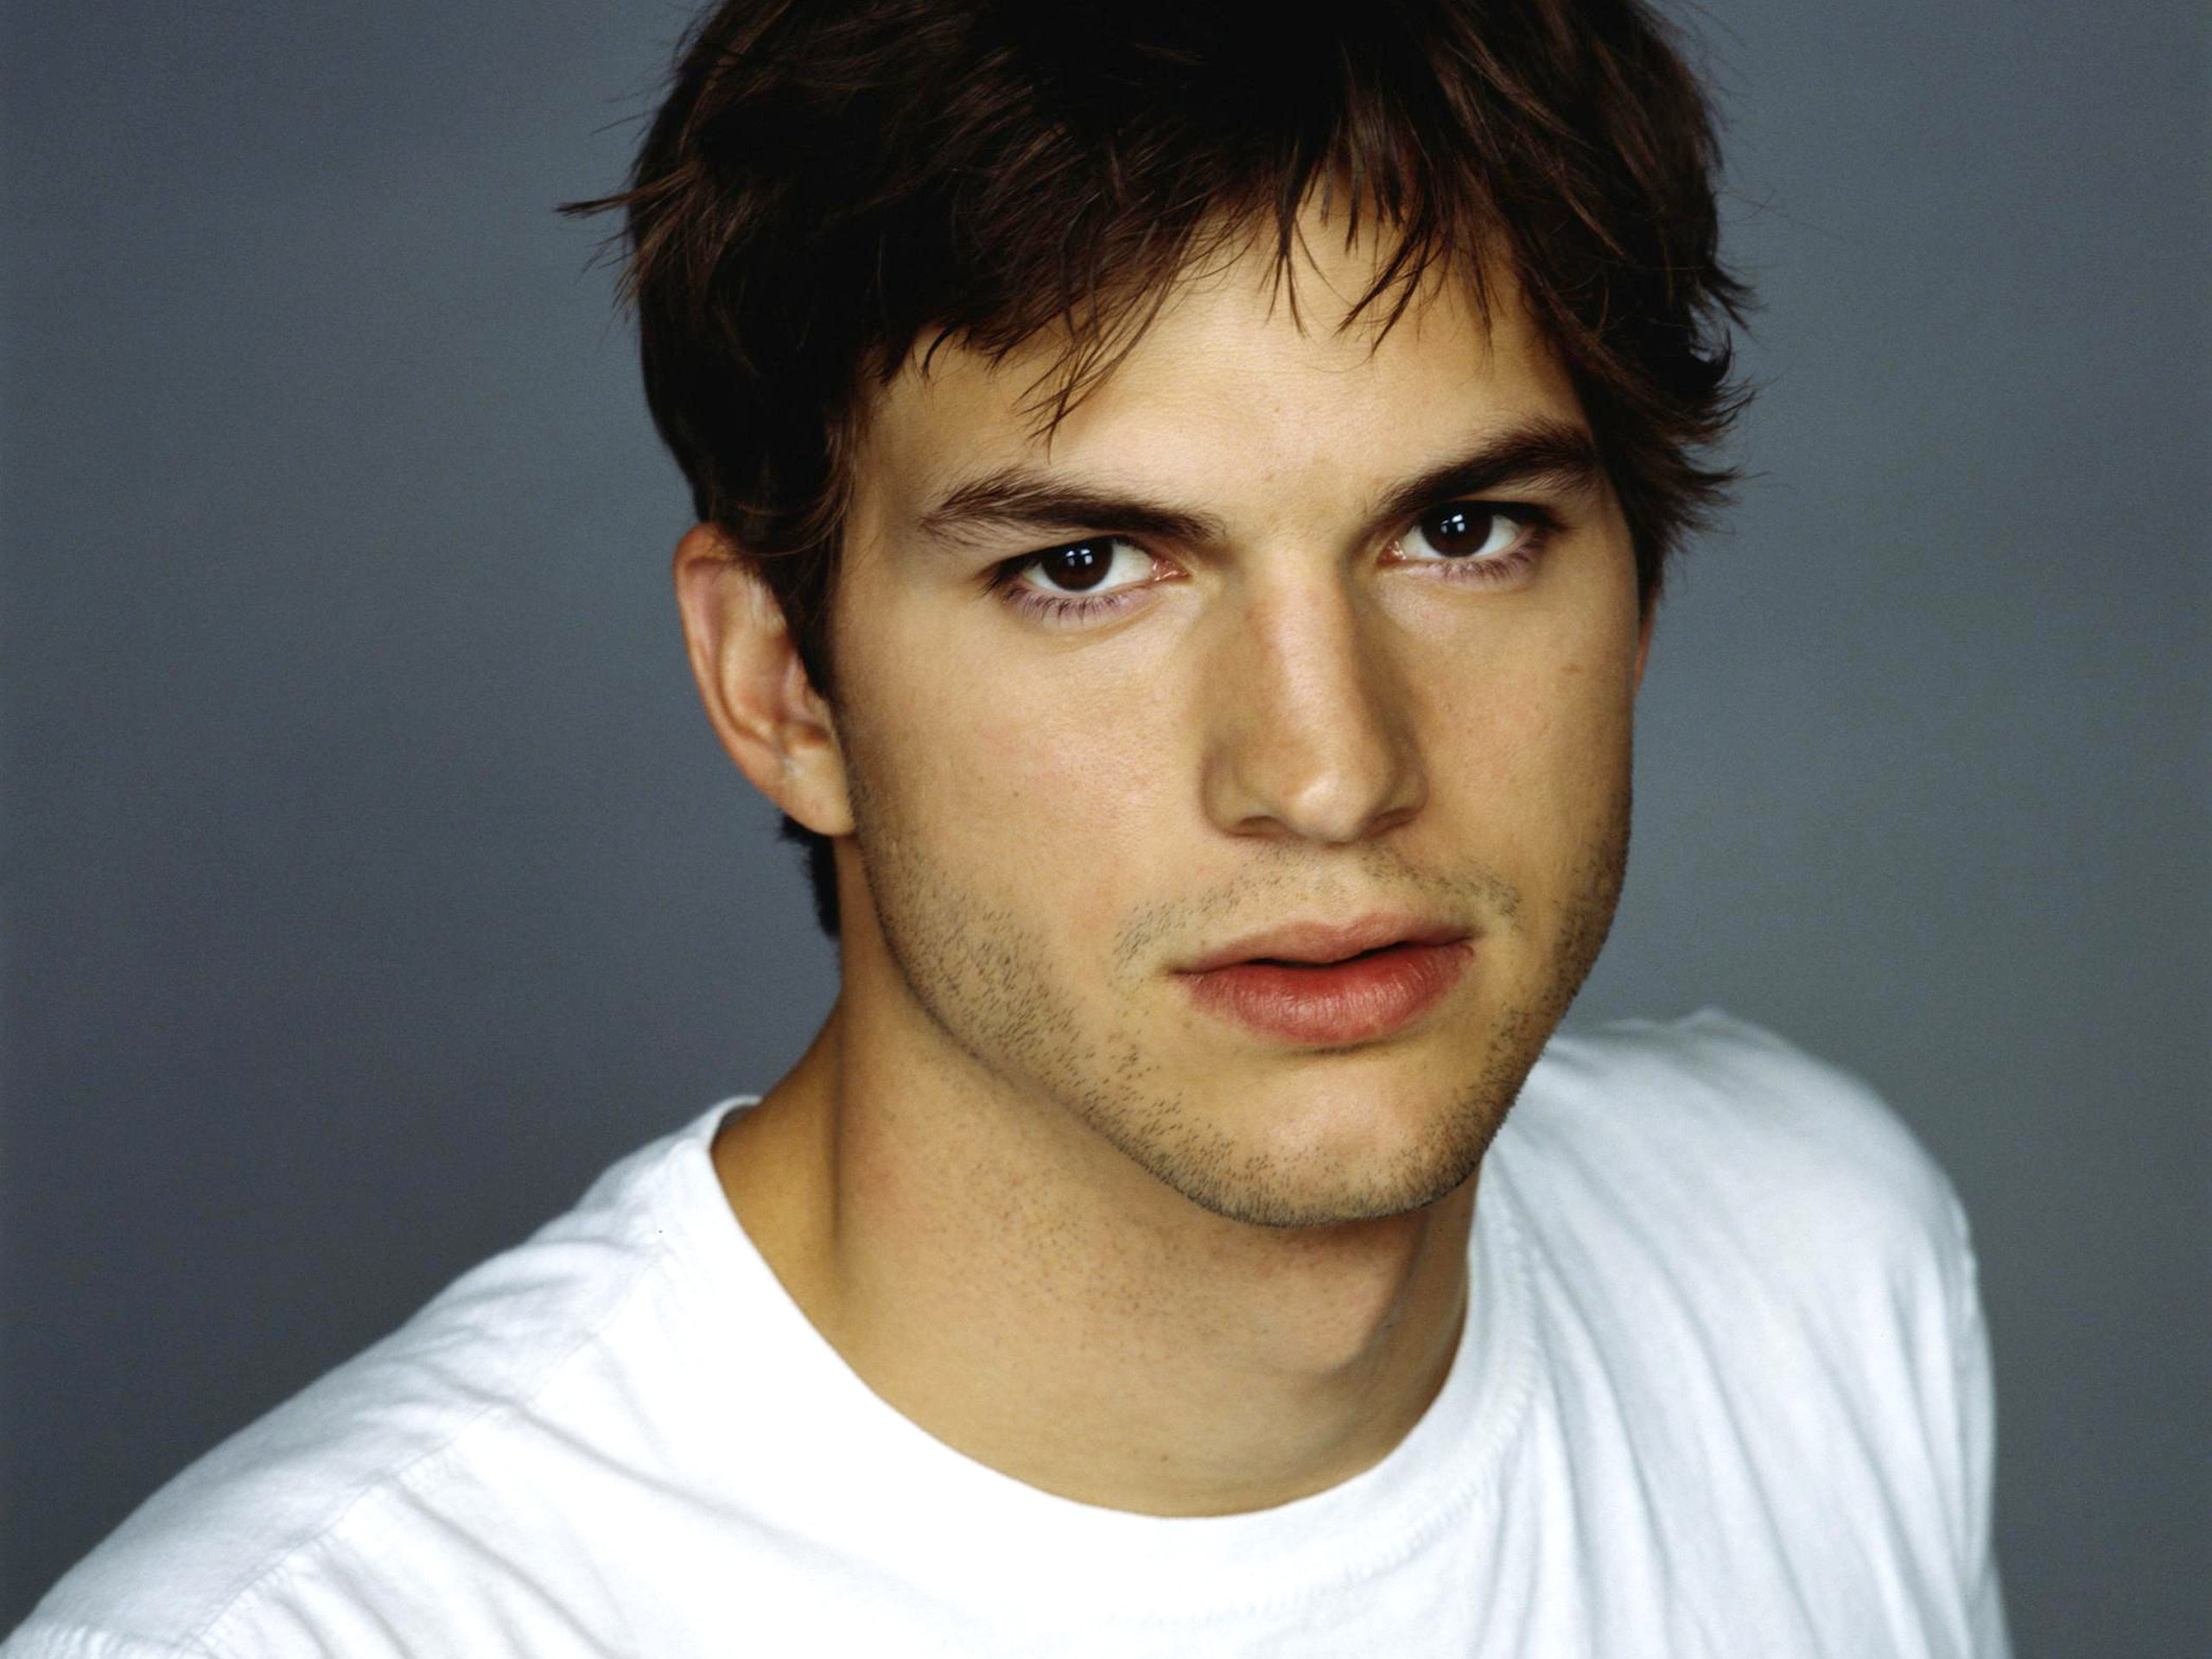 41 Ashton Kutcher HD Wallpapers Background Images 2560x1920